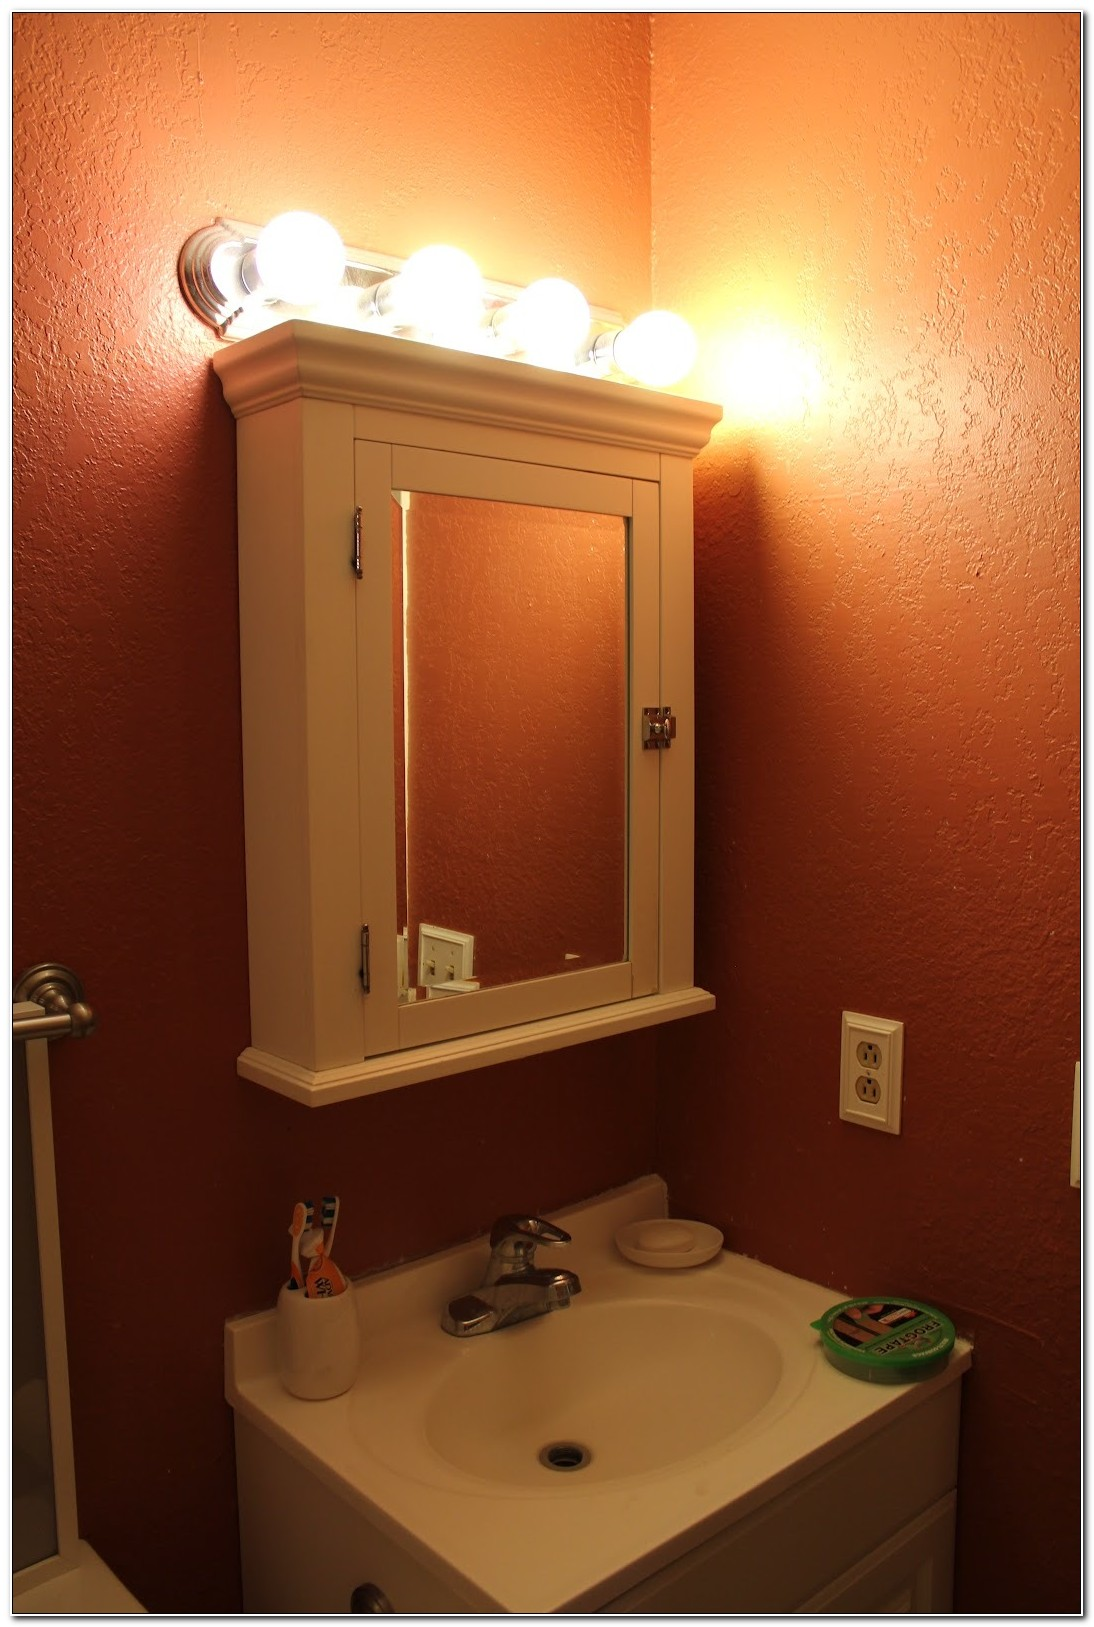 Bathroom Vanity Lights Over Medicine Cabinet